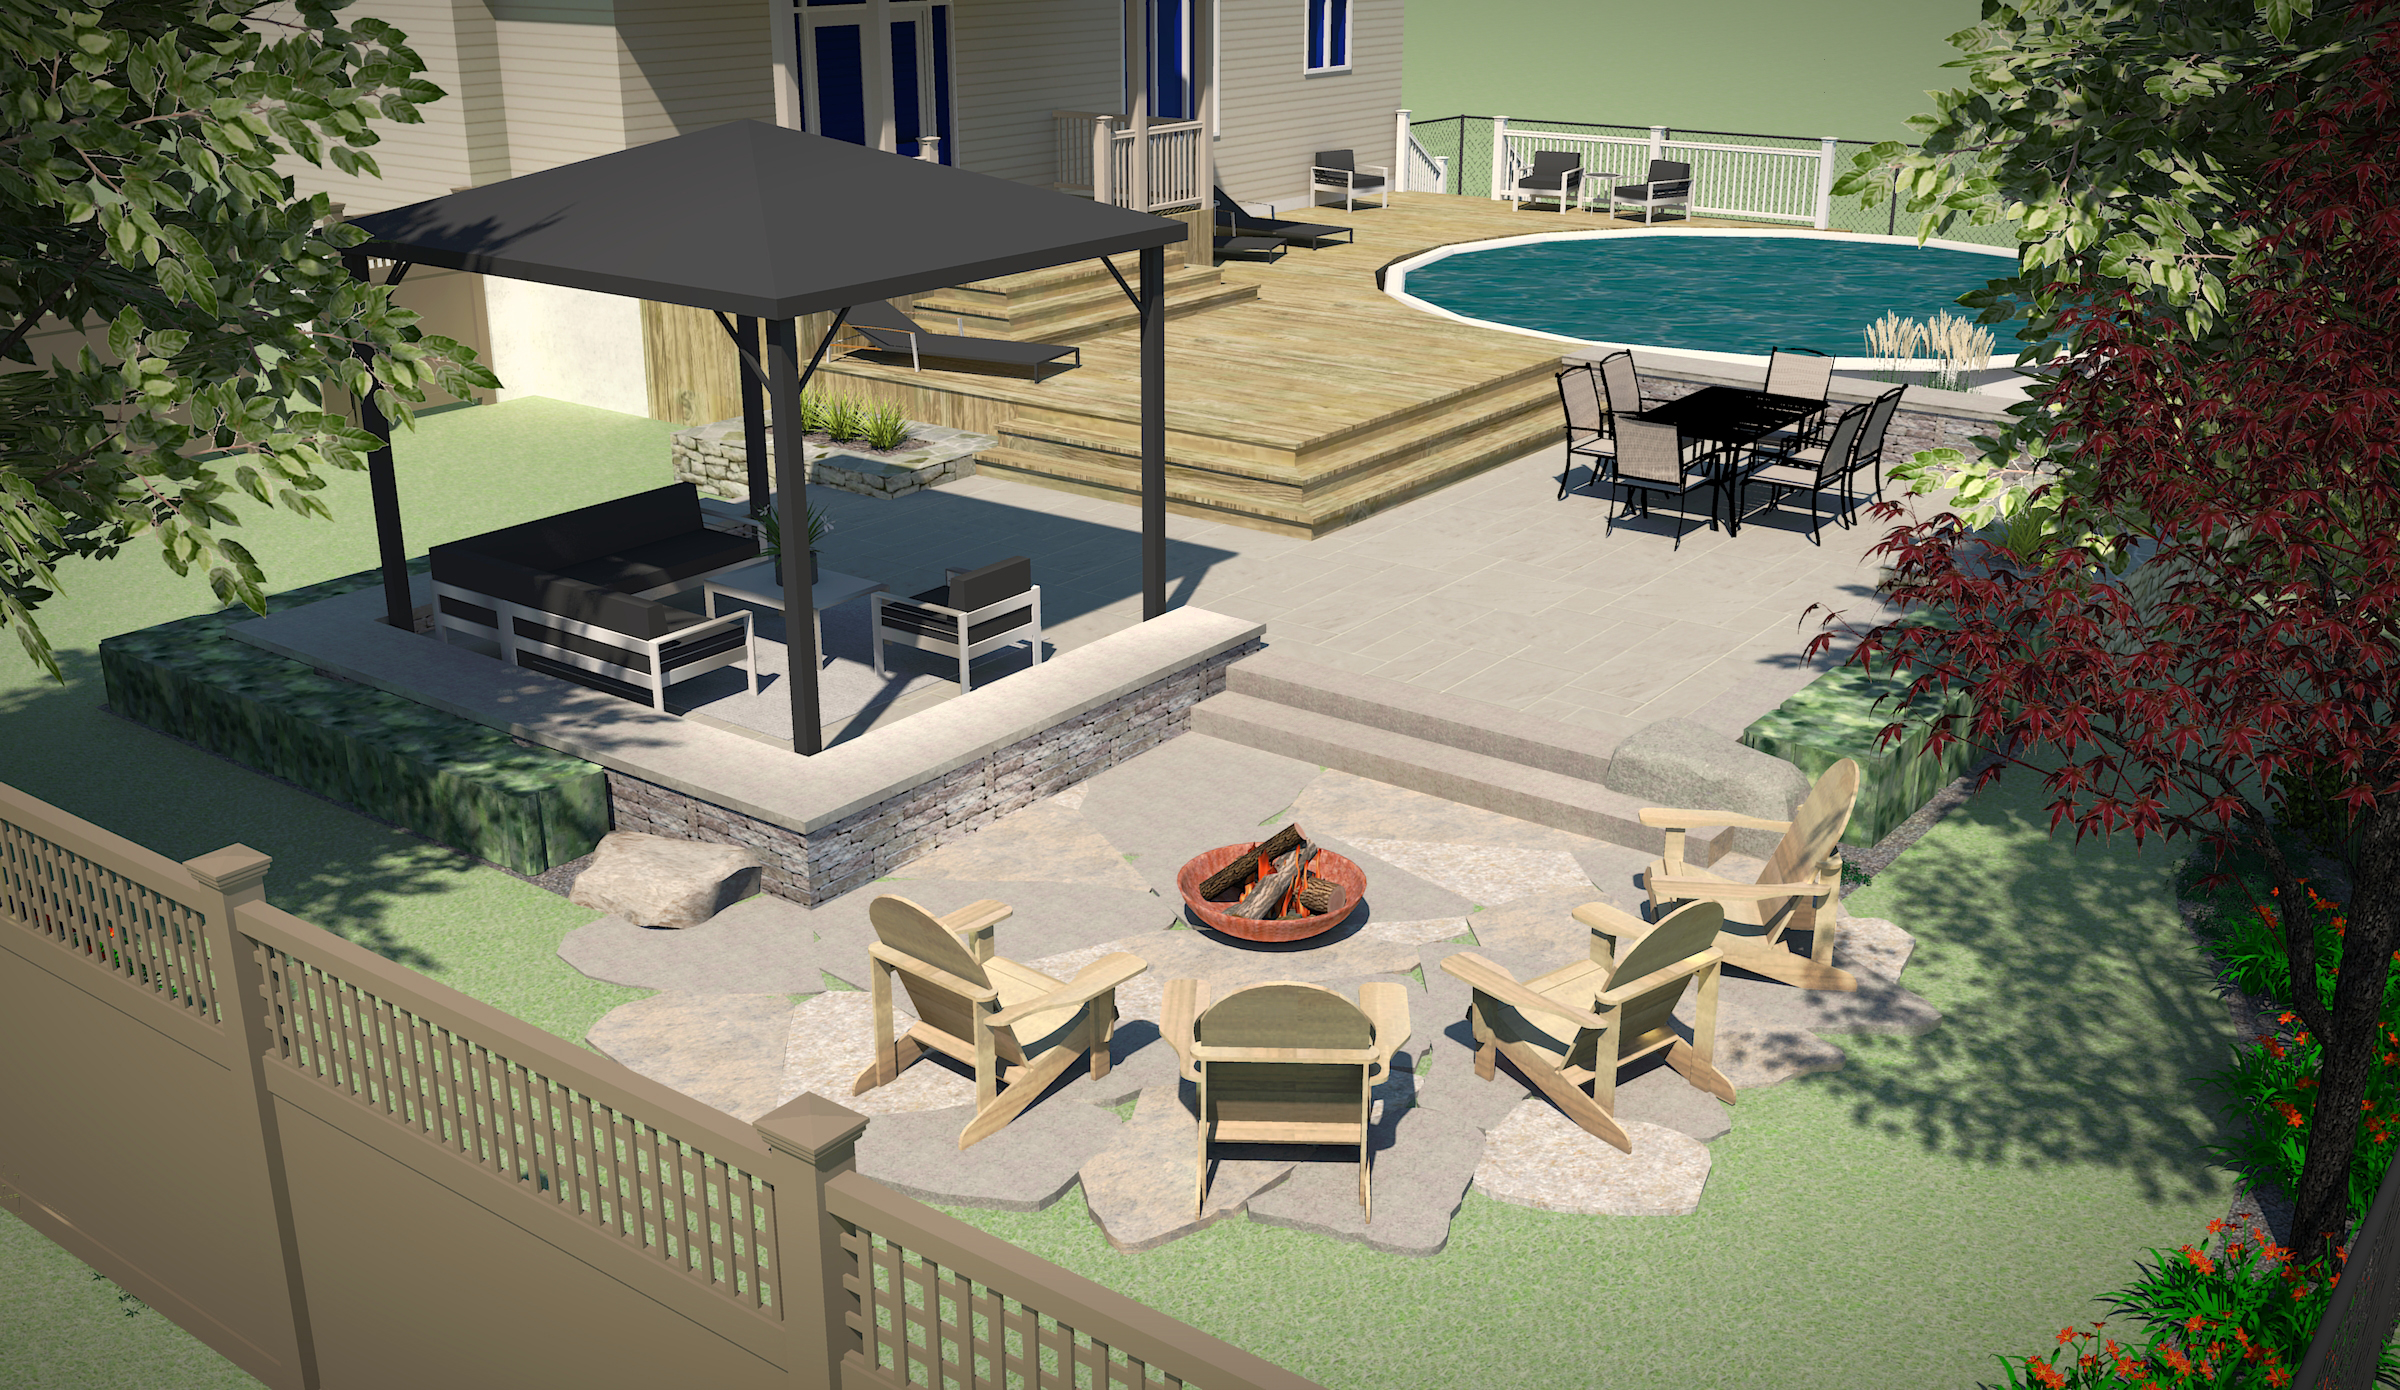 BL Overview Concept Backyard_Riverview Design Solutions_from north east corner_Modern Design.jpg